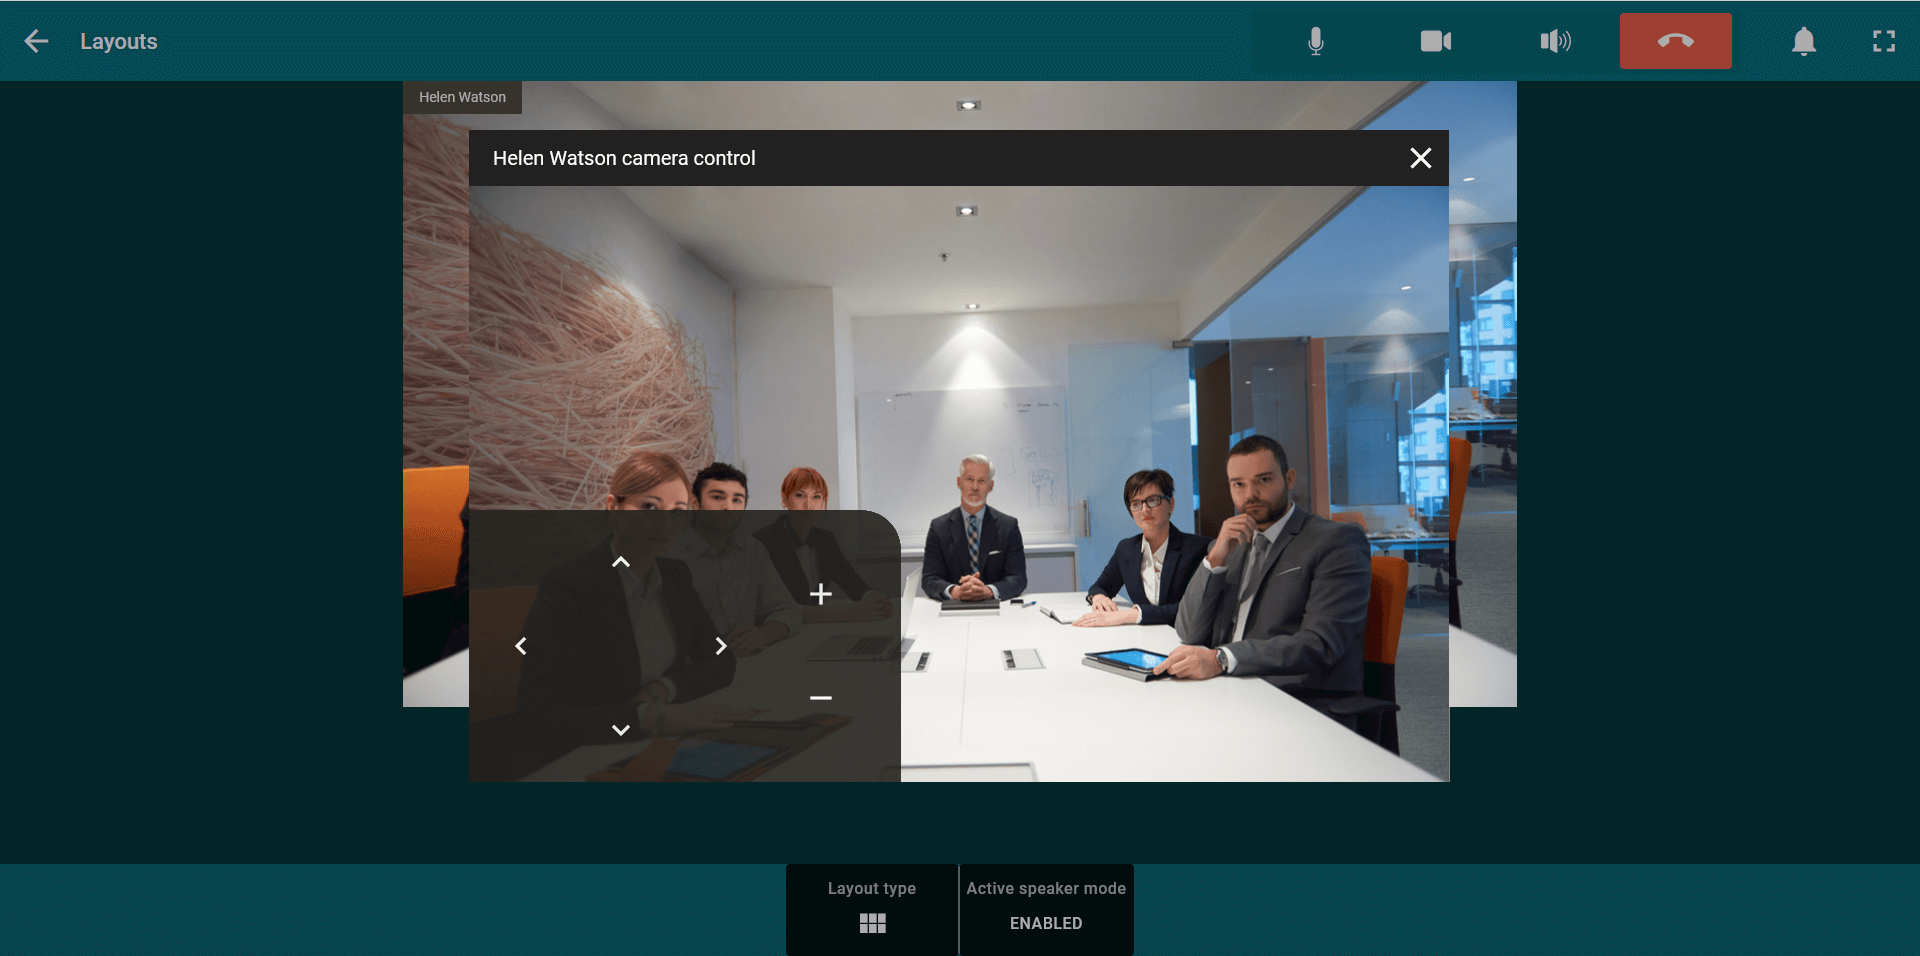 TrueConf Room 4.0 Update: New UI and Real-Time Meeting Management 15